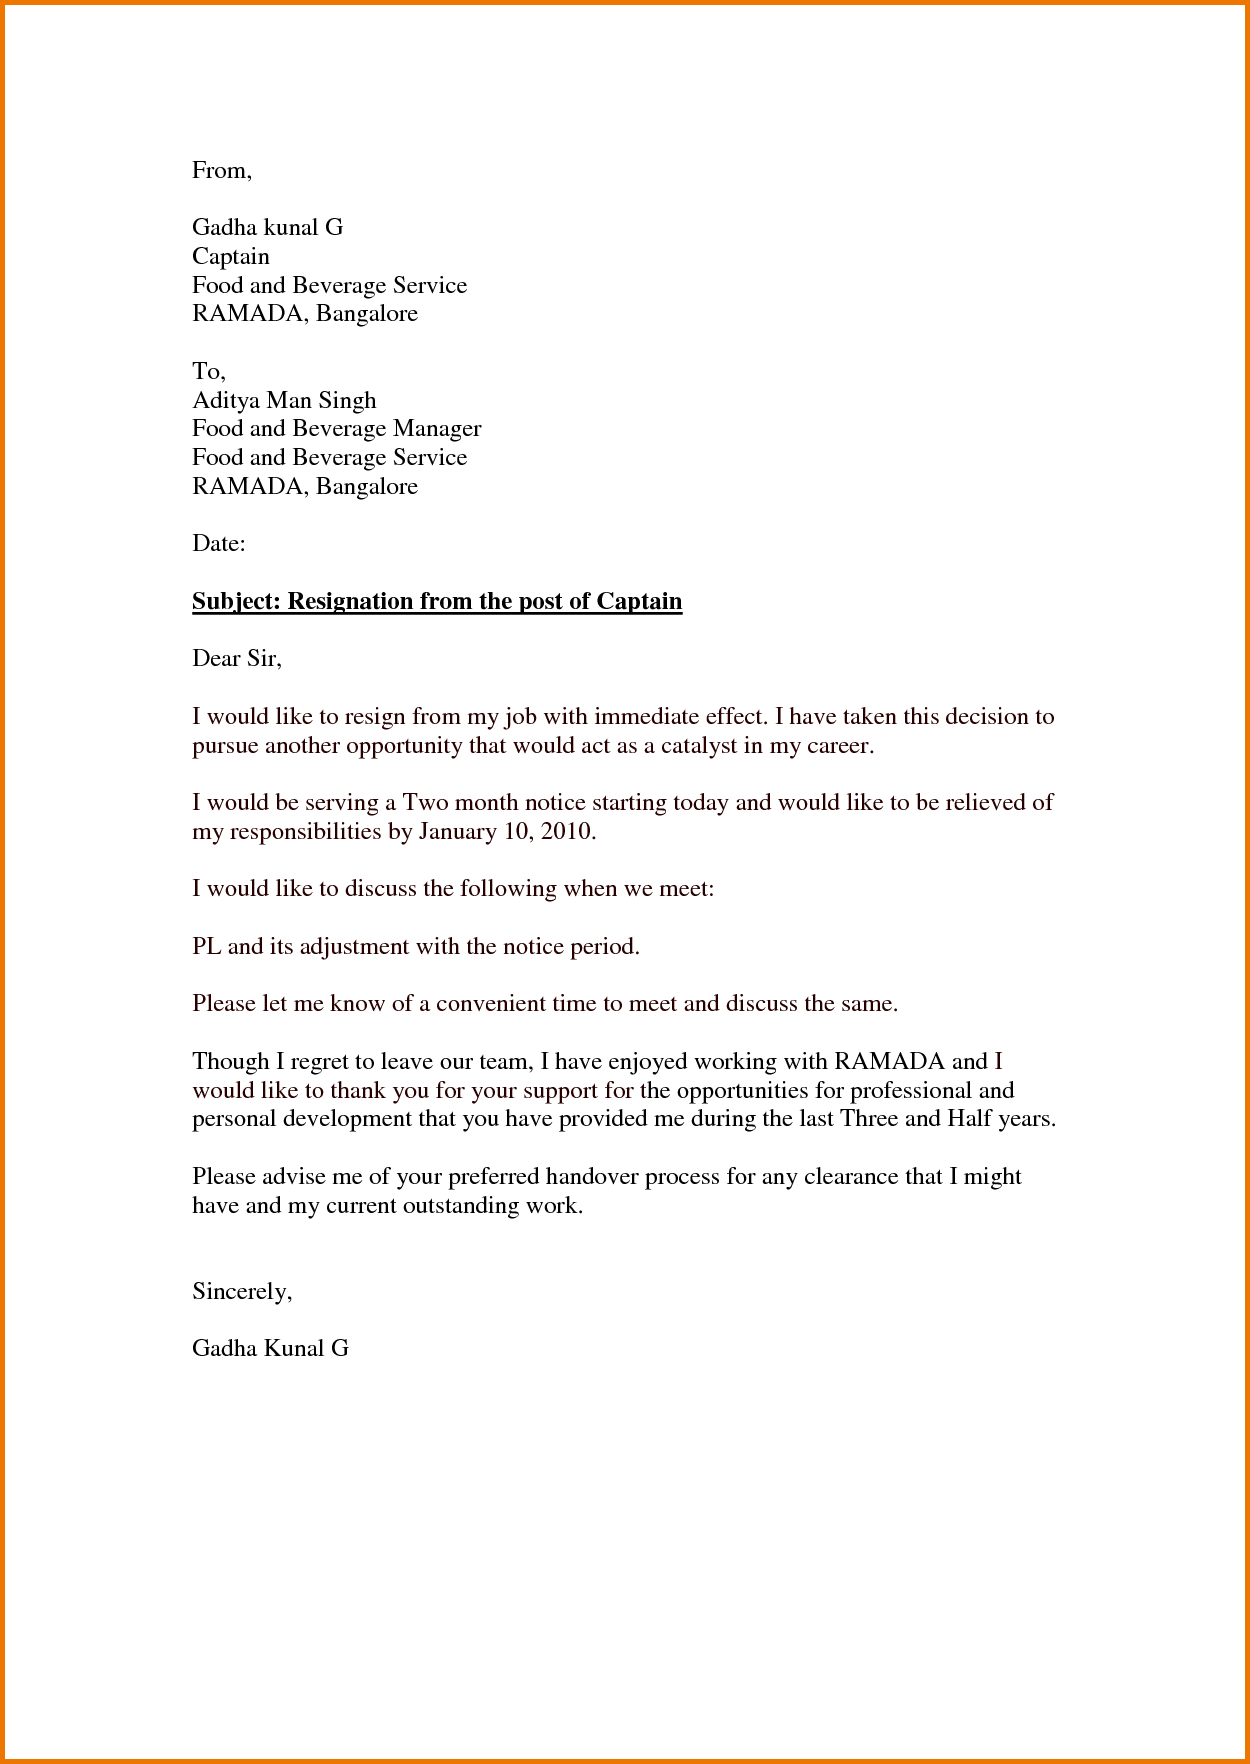 Immediate resignation letter template samples letter template immediate resignation letter template resignation letter simple artesumes how to make effective thecheapjerseys Gallery